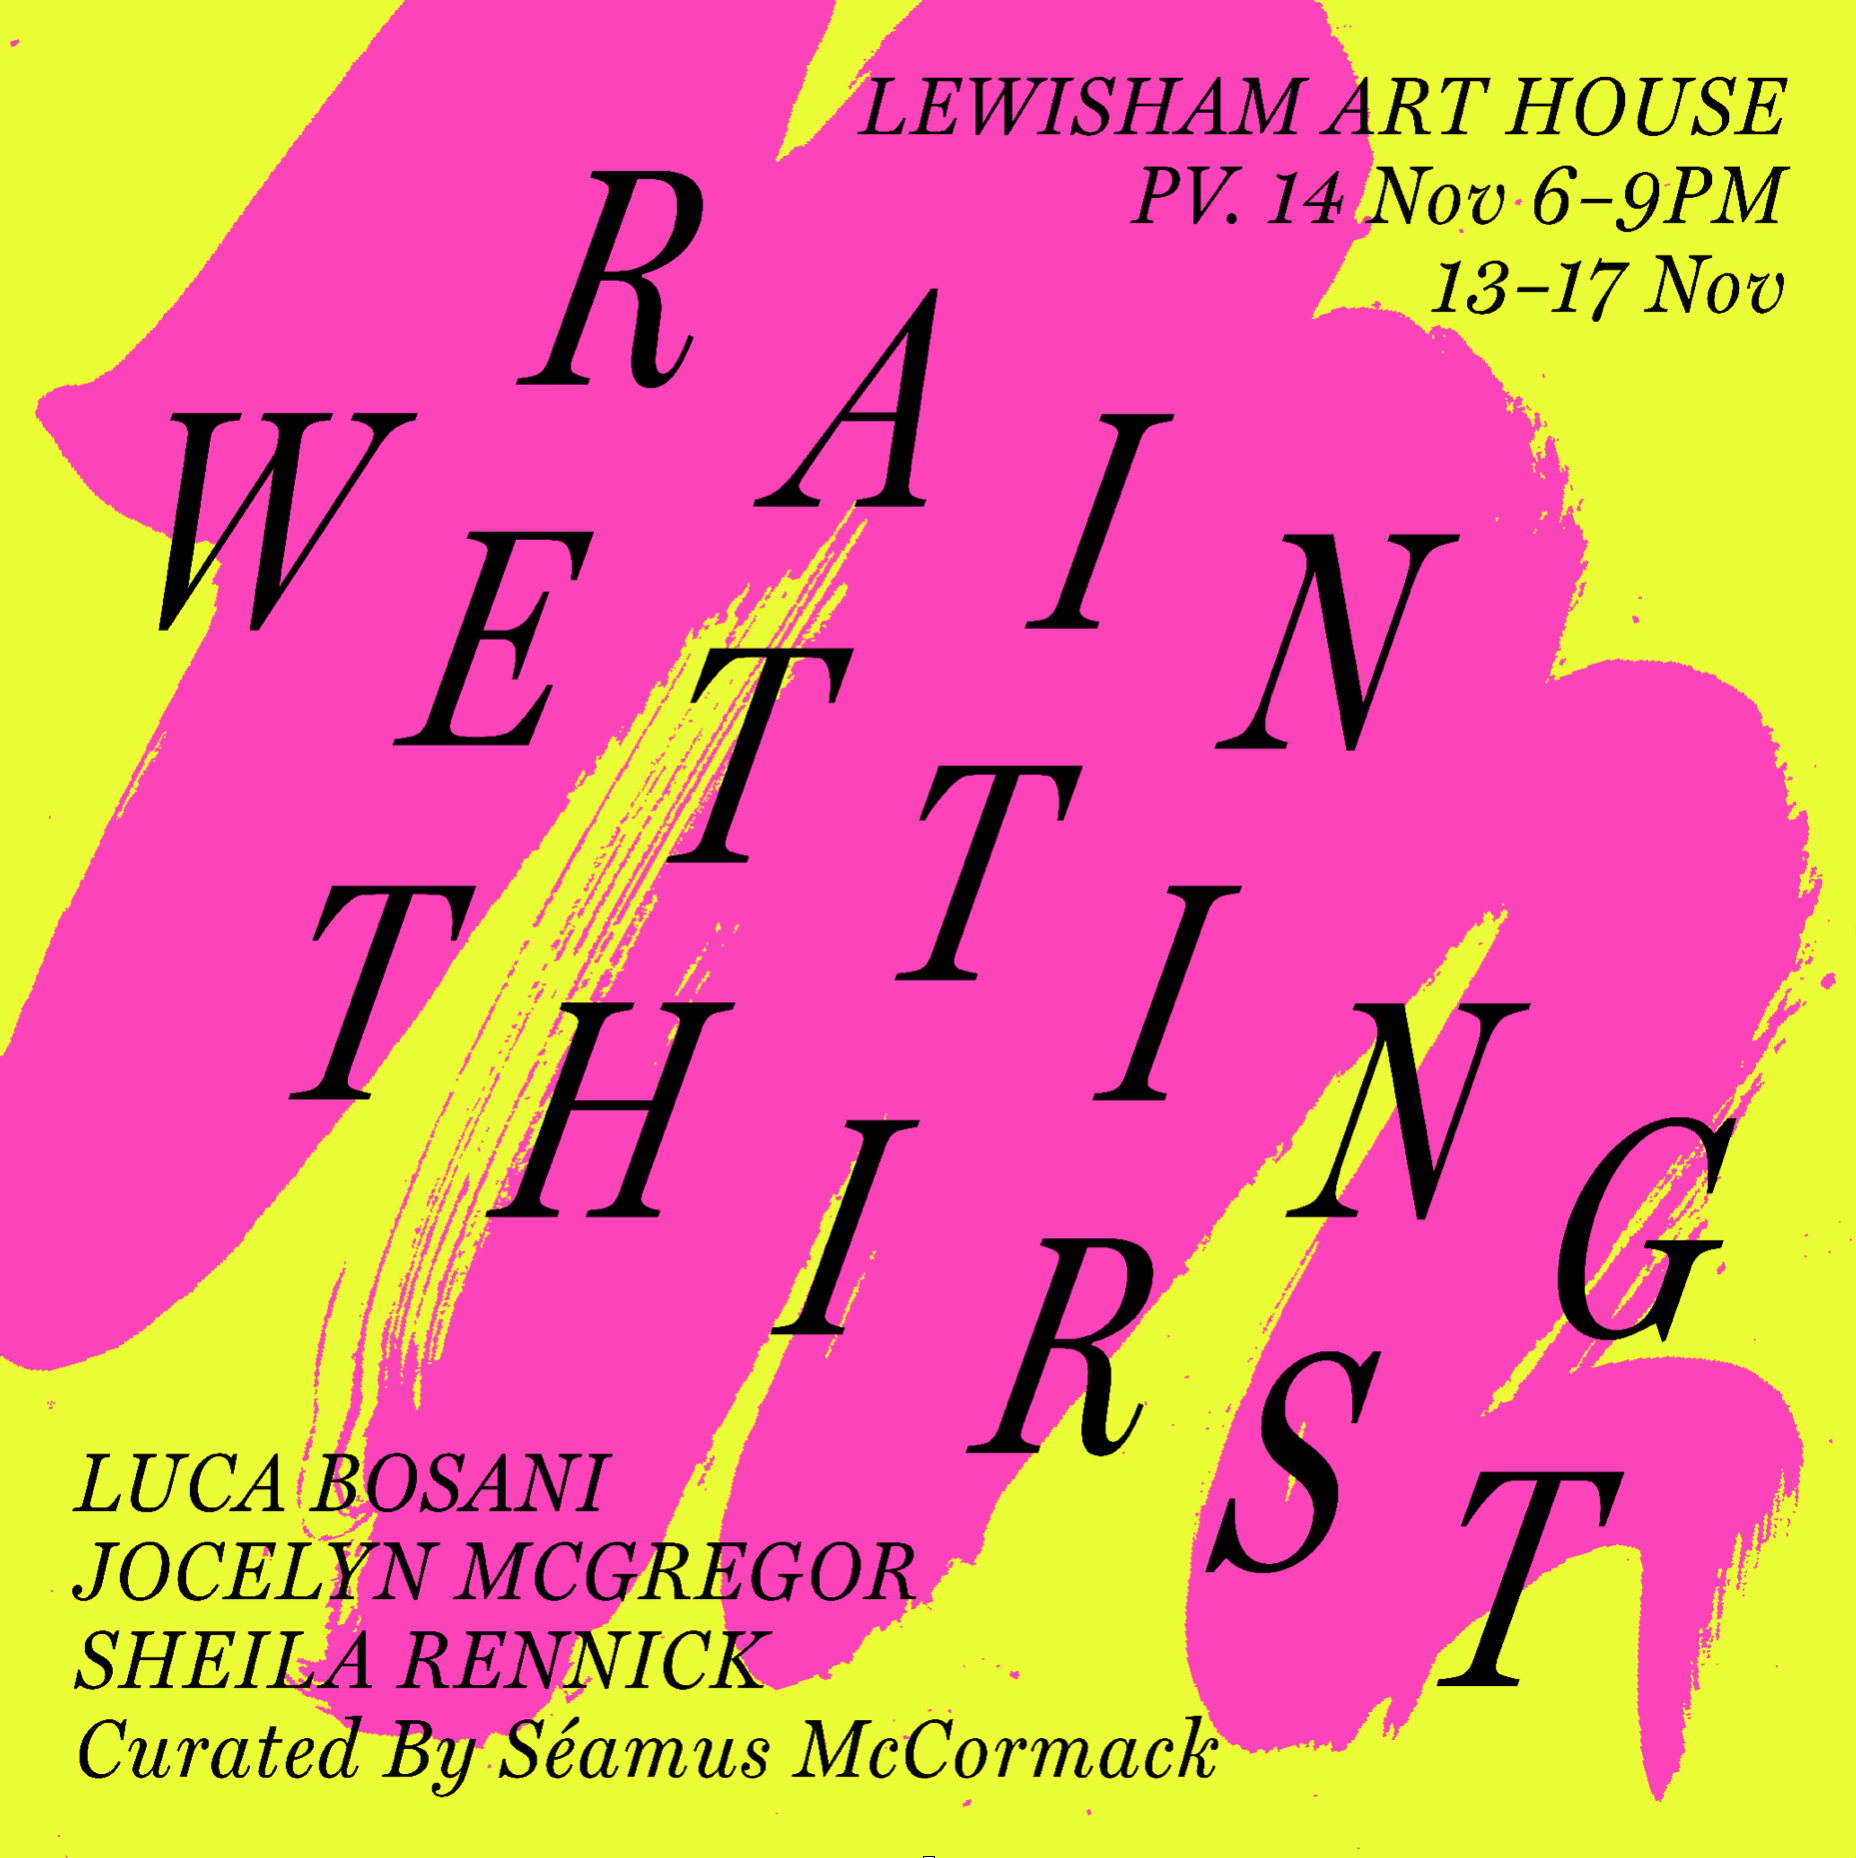 Previous Event Archives Lewisham Arthouse